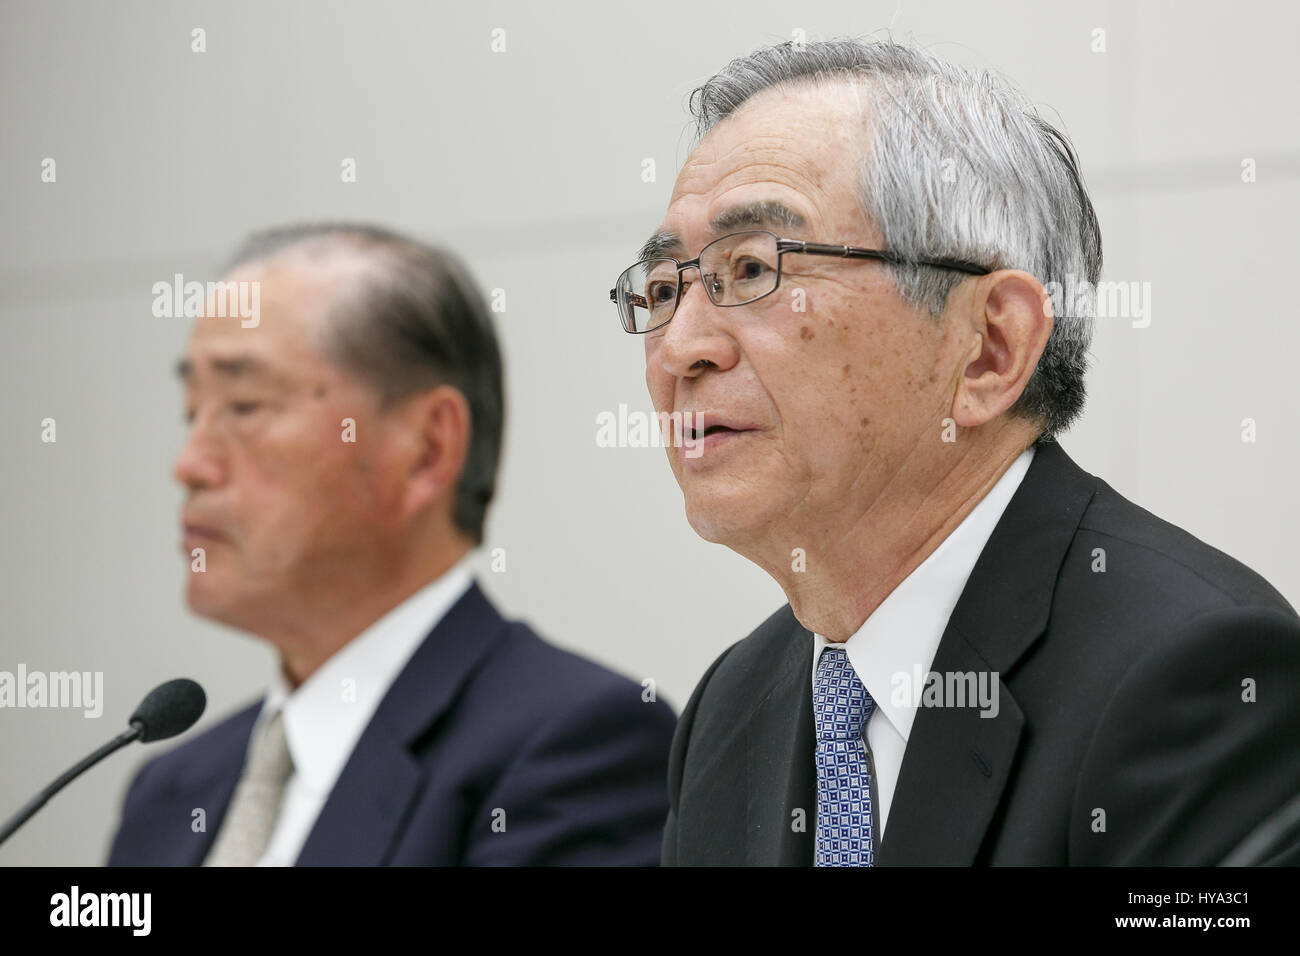 (L to R) Tokyo Electric Power Co (TEPCO) Holdings current chairman Fumio Sudo and new chairman Takashi Kawamura, - Stock Image